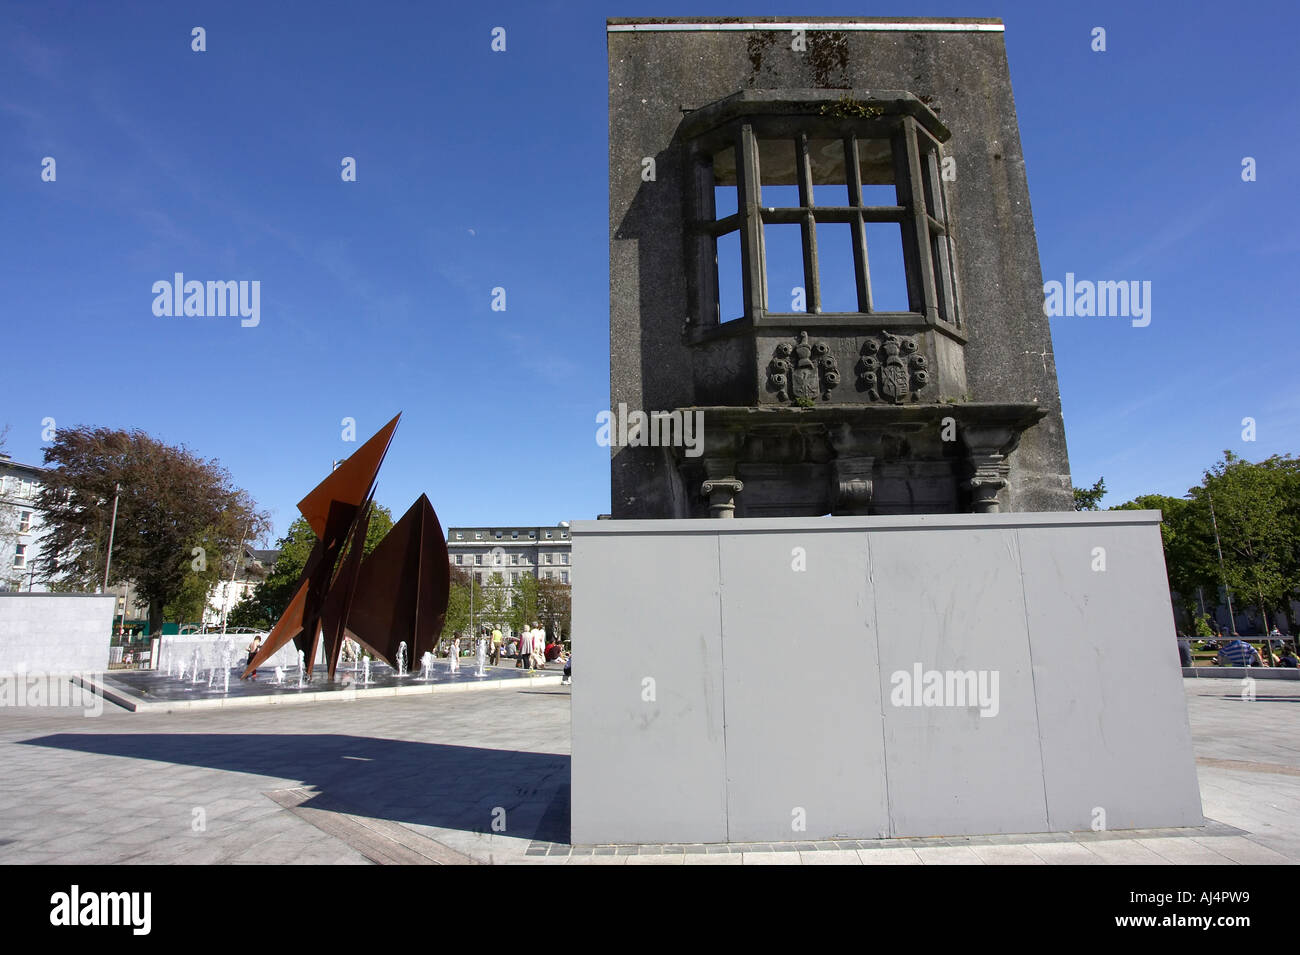 The Browne doorway from 1627 on Eyre Square in the heart of Galway city county Galway Republic of Ireland - Stock Image